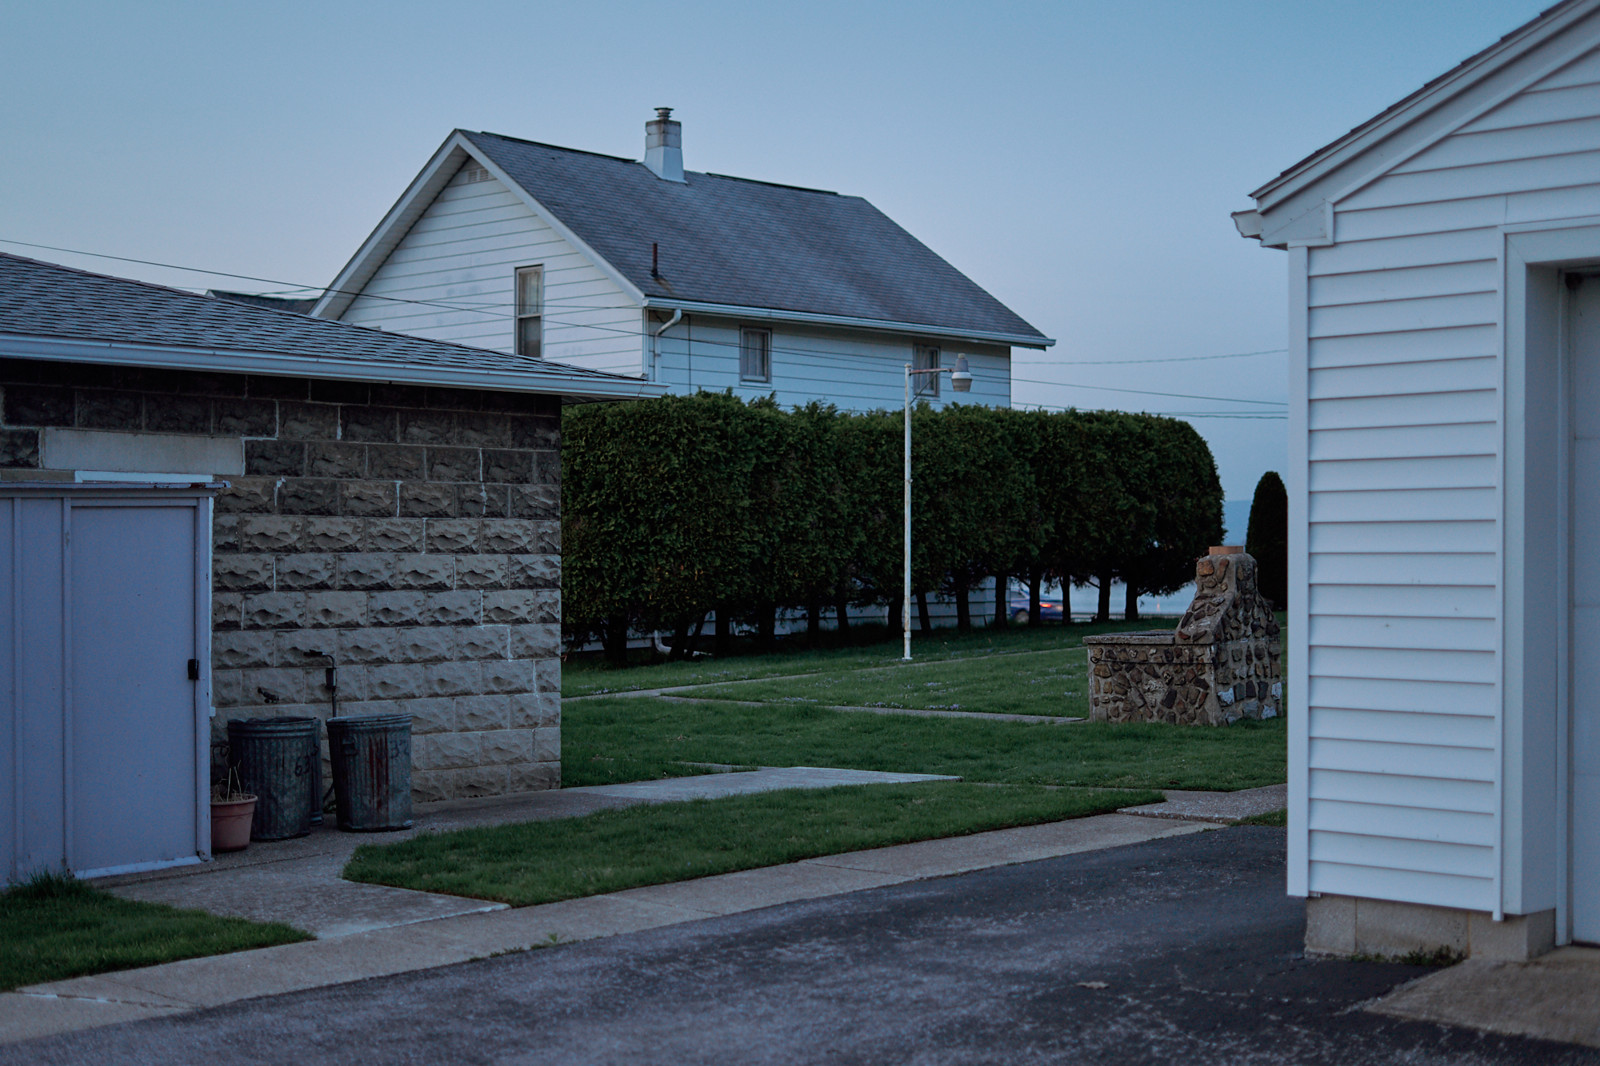 Wormleysburg, Pennsylvania, fine art, street photography, photography